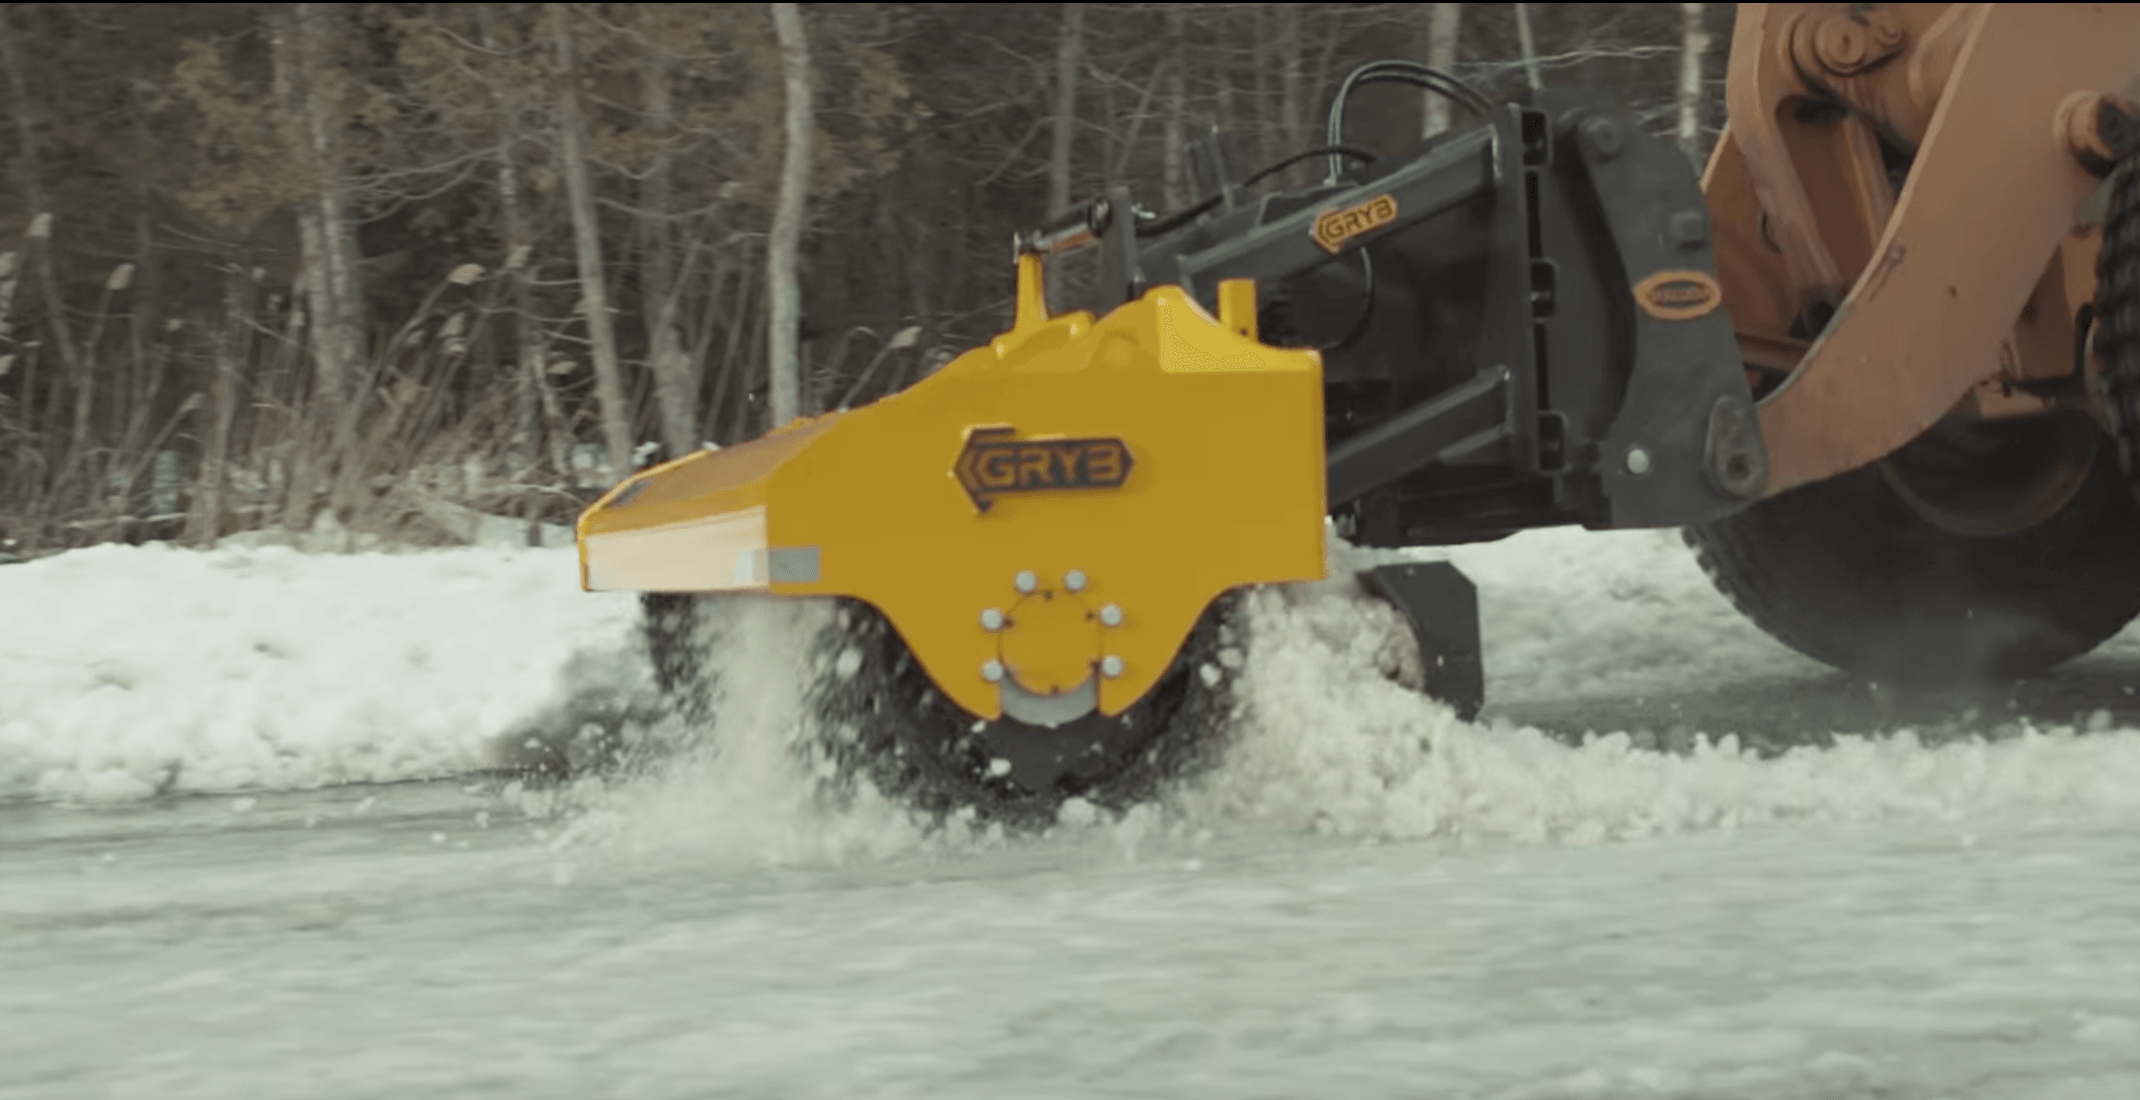 City will use rolling ice-crushing machines to clear slippery sidewalks